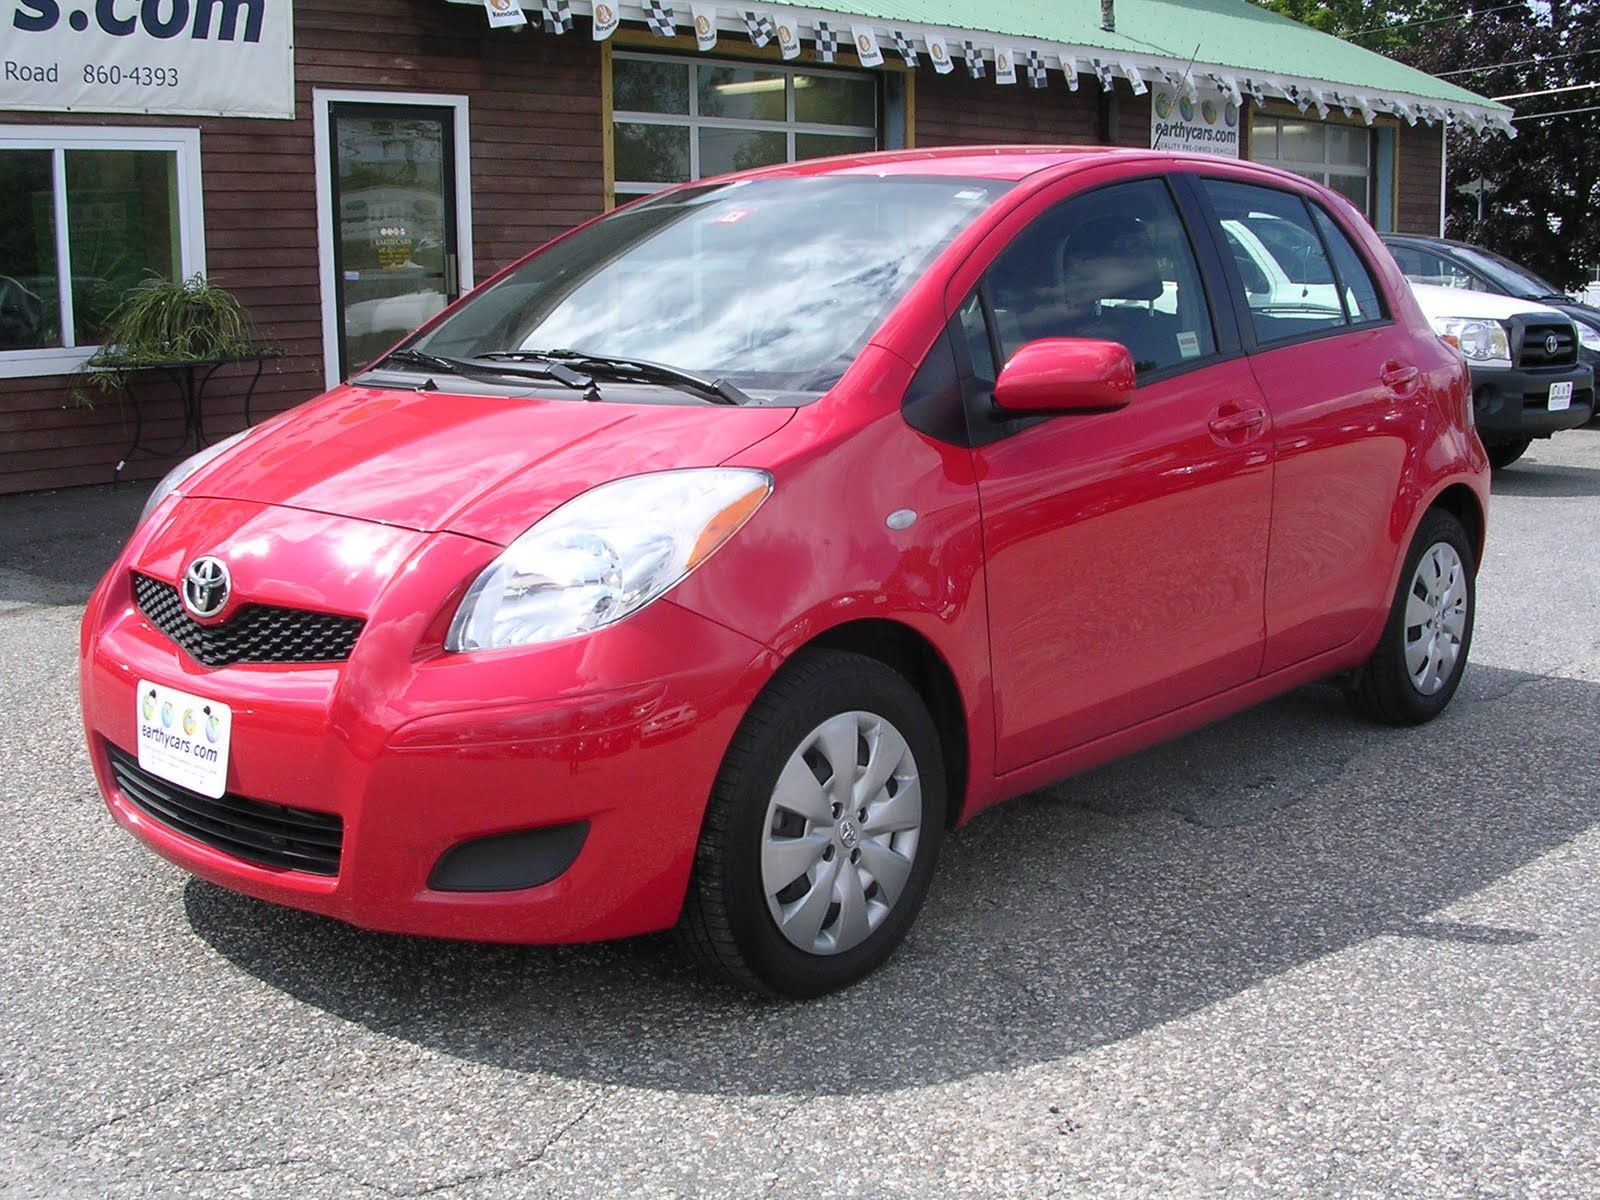 My 22nd And Current Vehicle   A Red 2009 Toyota Yaris 4 Door Hatchback. 4  Cylinder With A 5 Speed Automatic. Nice Commuter Car, Gets 36 Mpg On  Average.